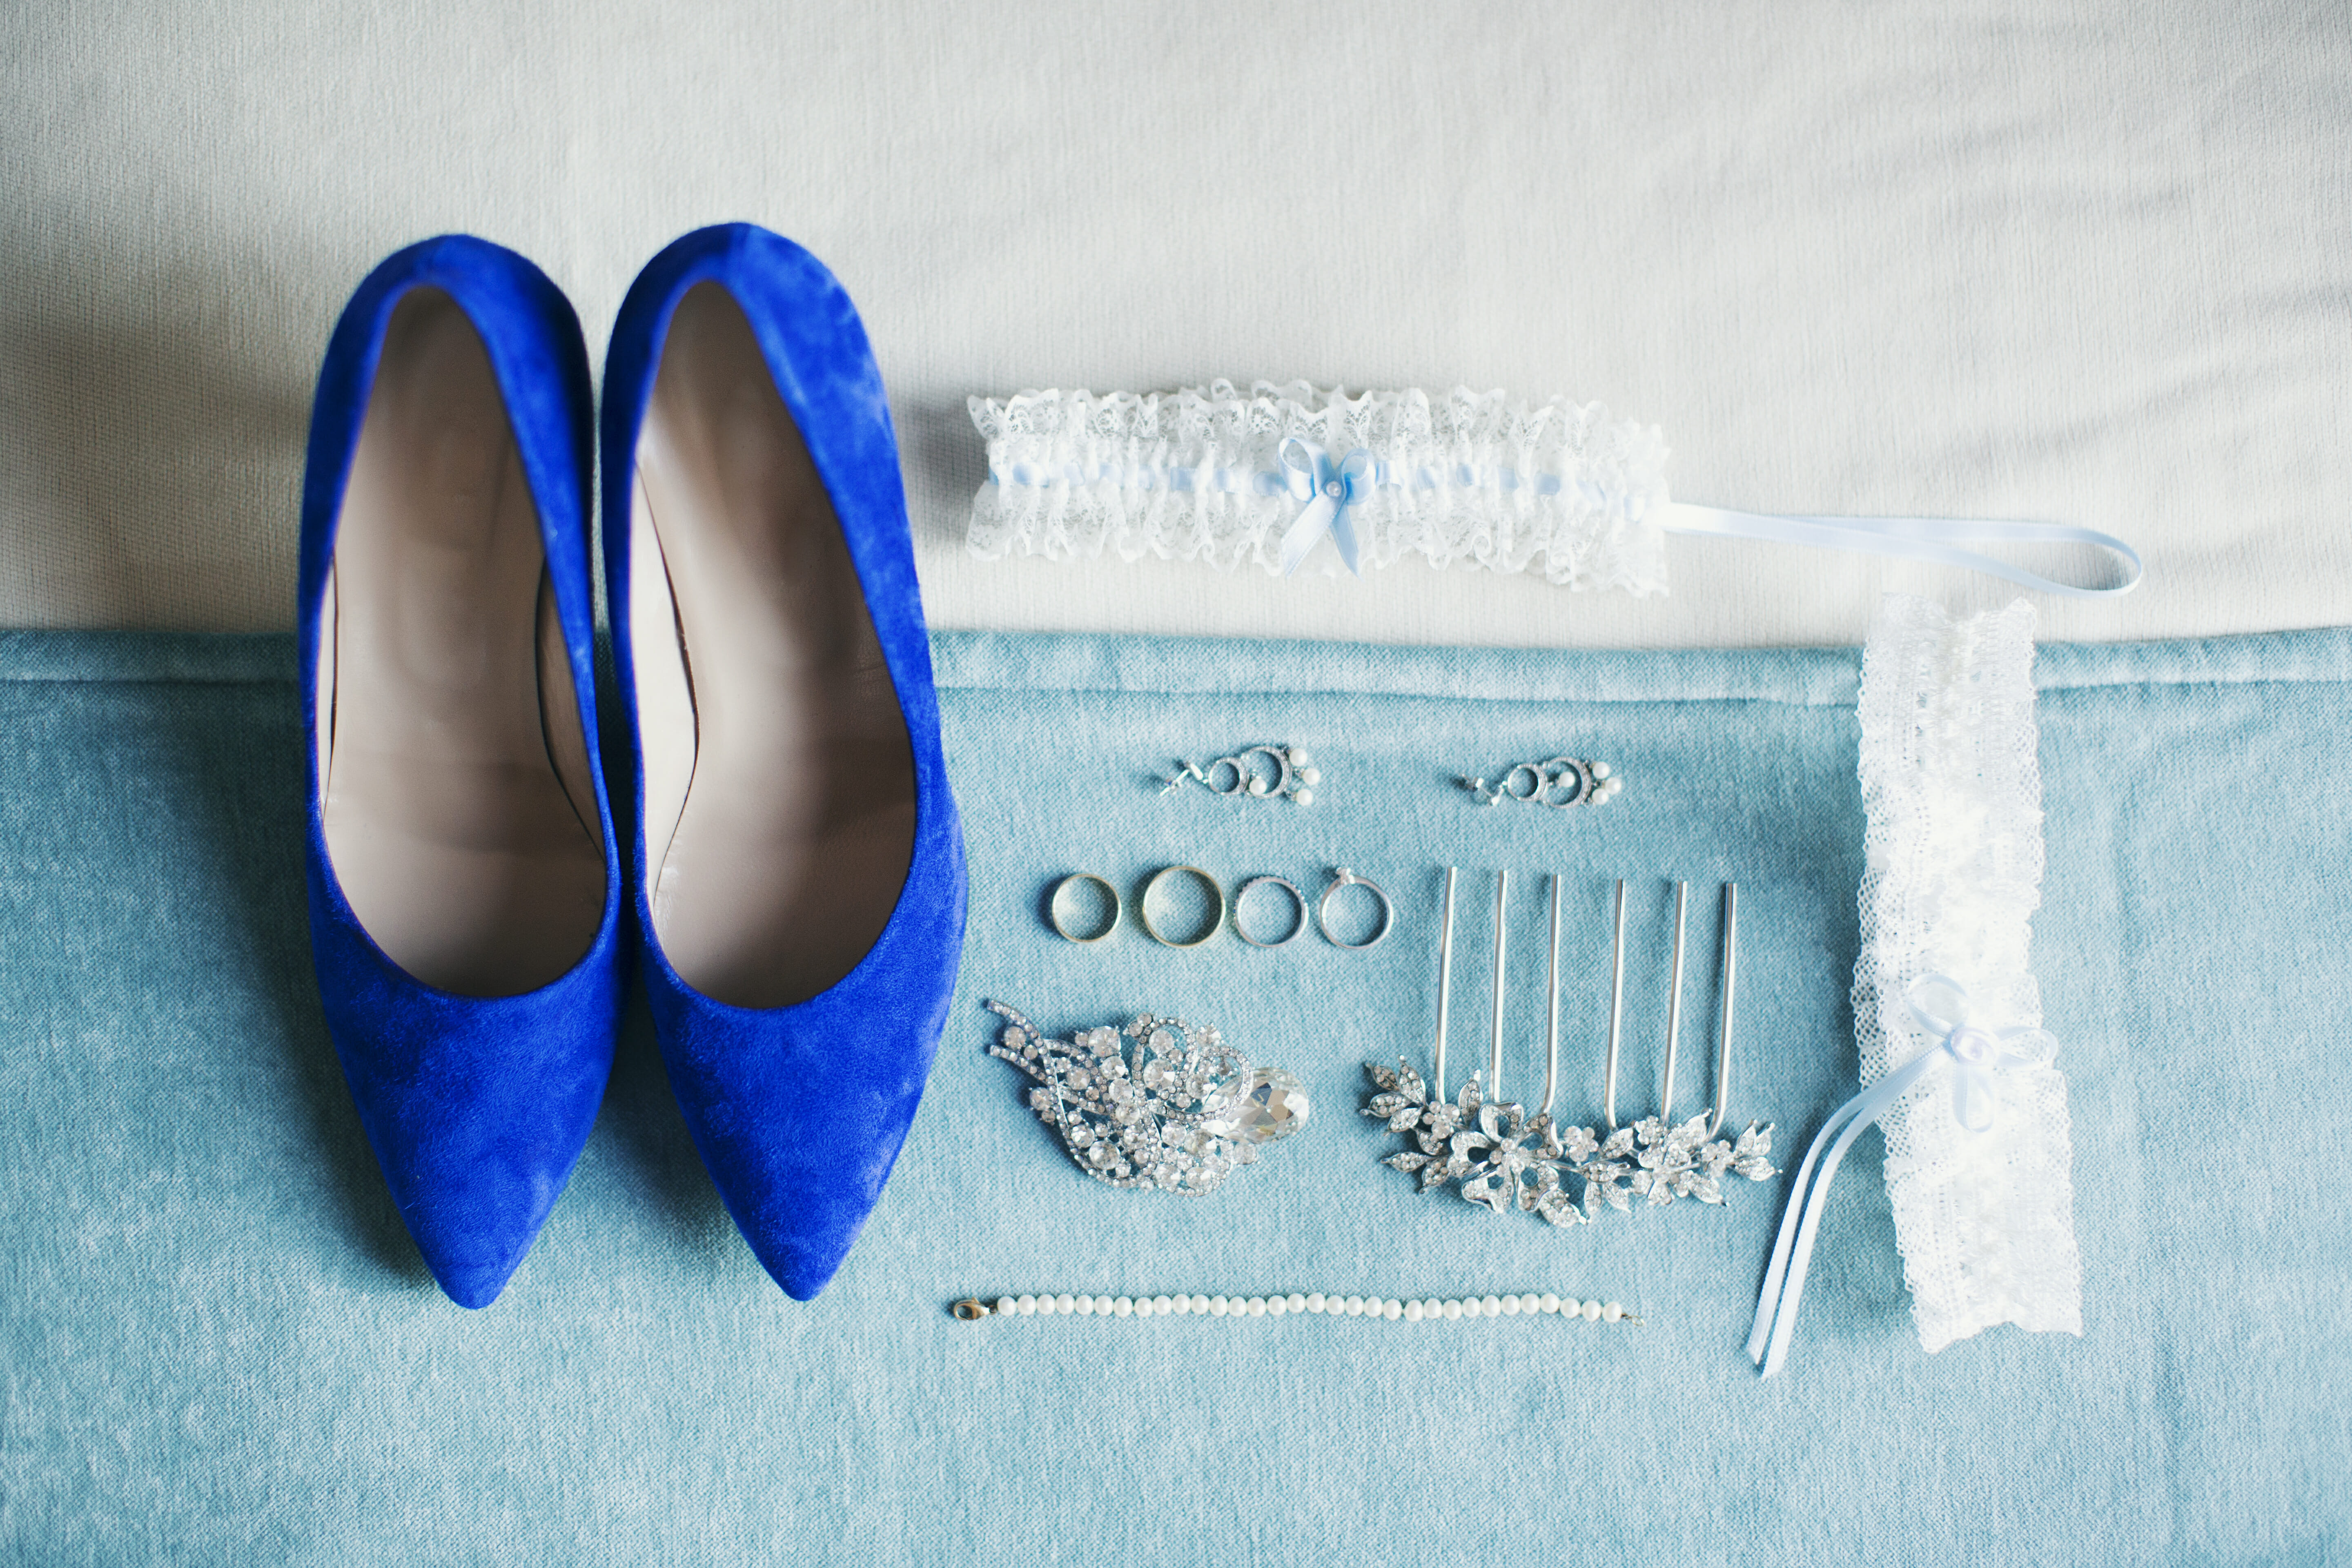 Wedding attire and accessories: shoes, garter and jewelry